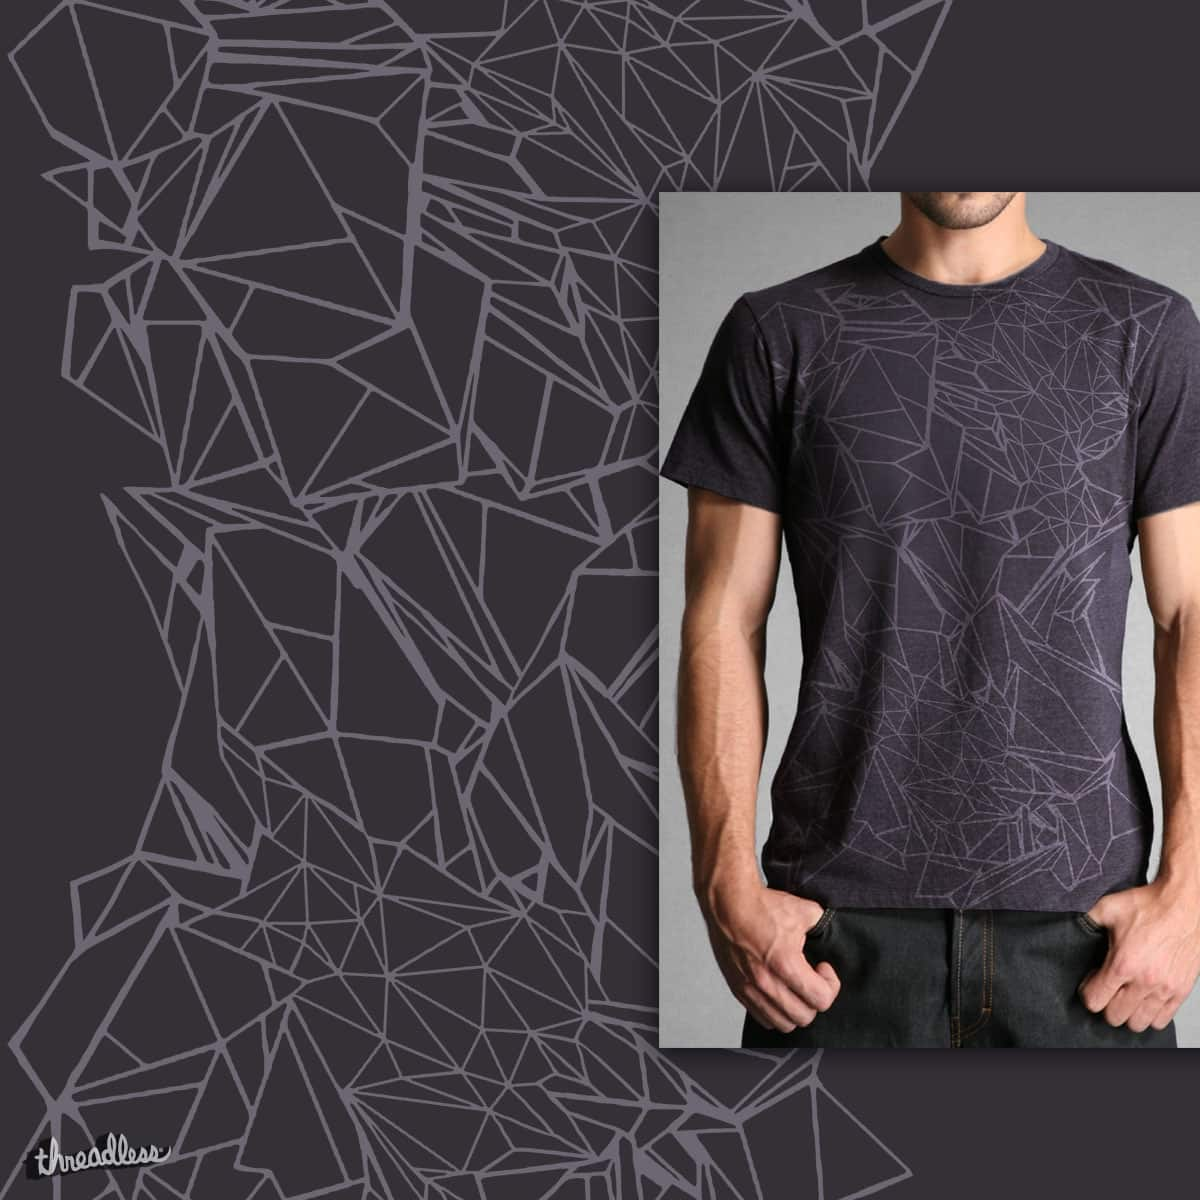 Crystal dimension by yeoul4 on Threadless